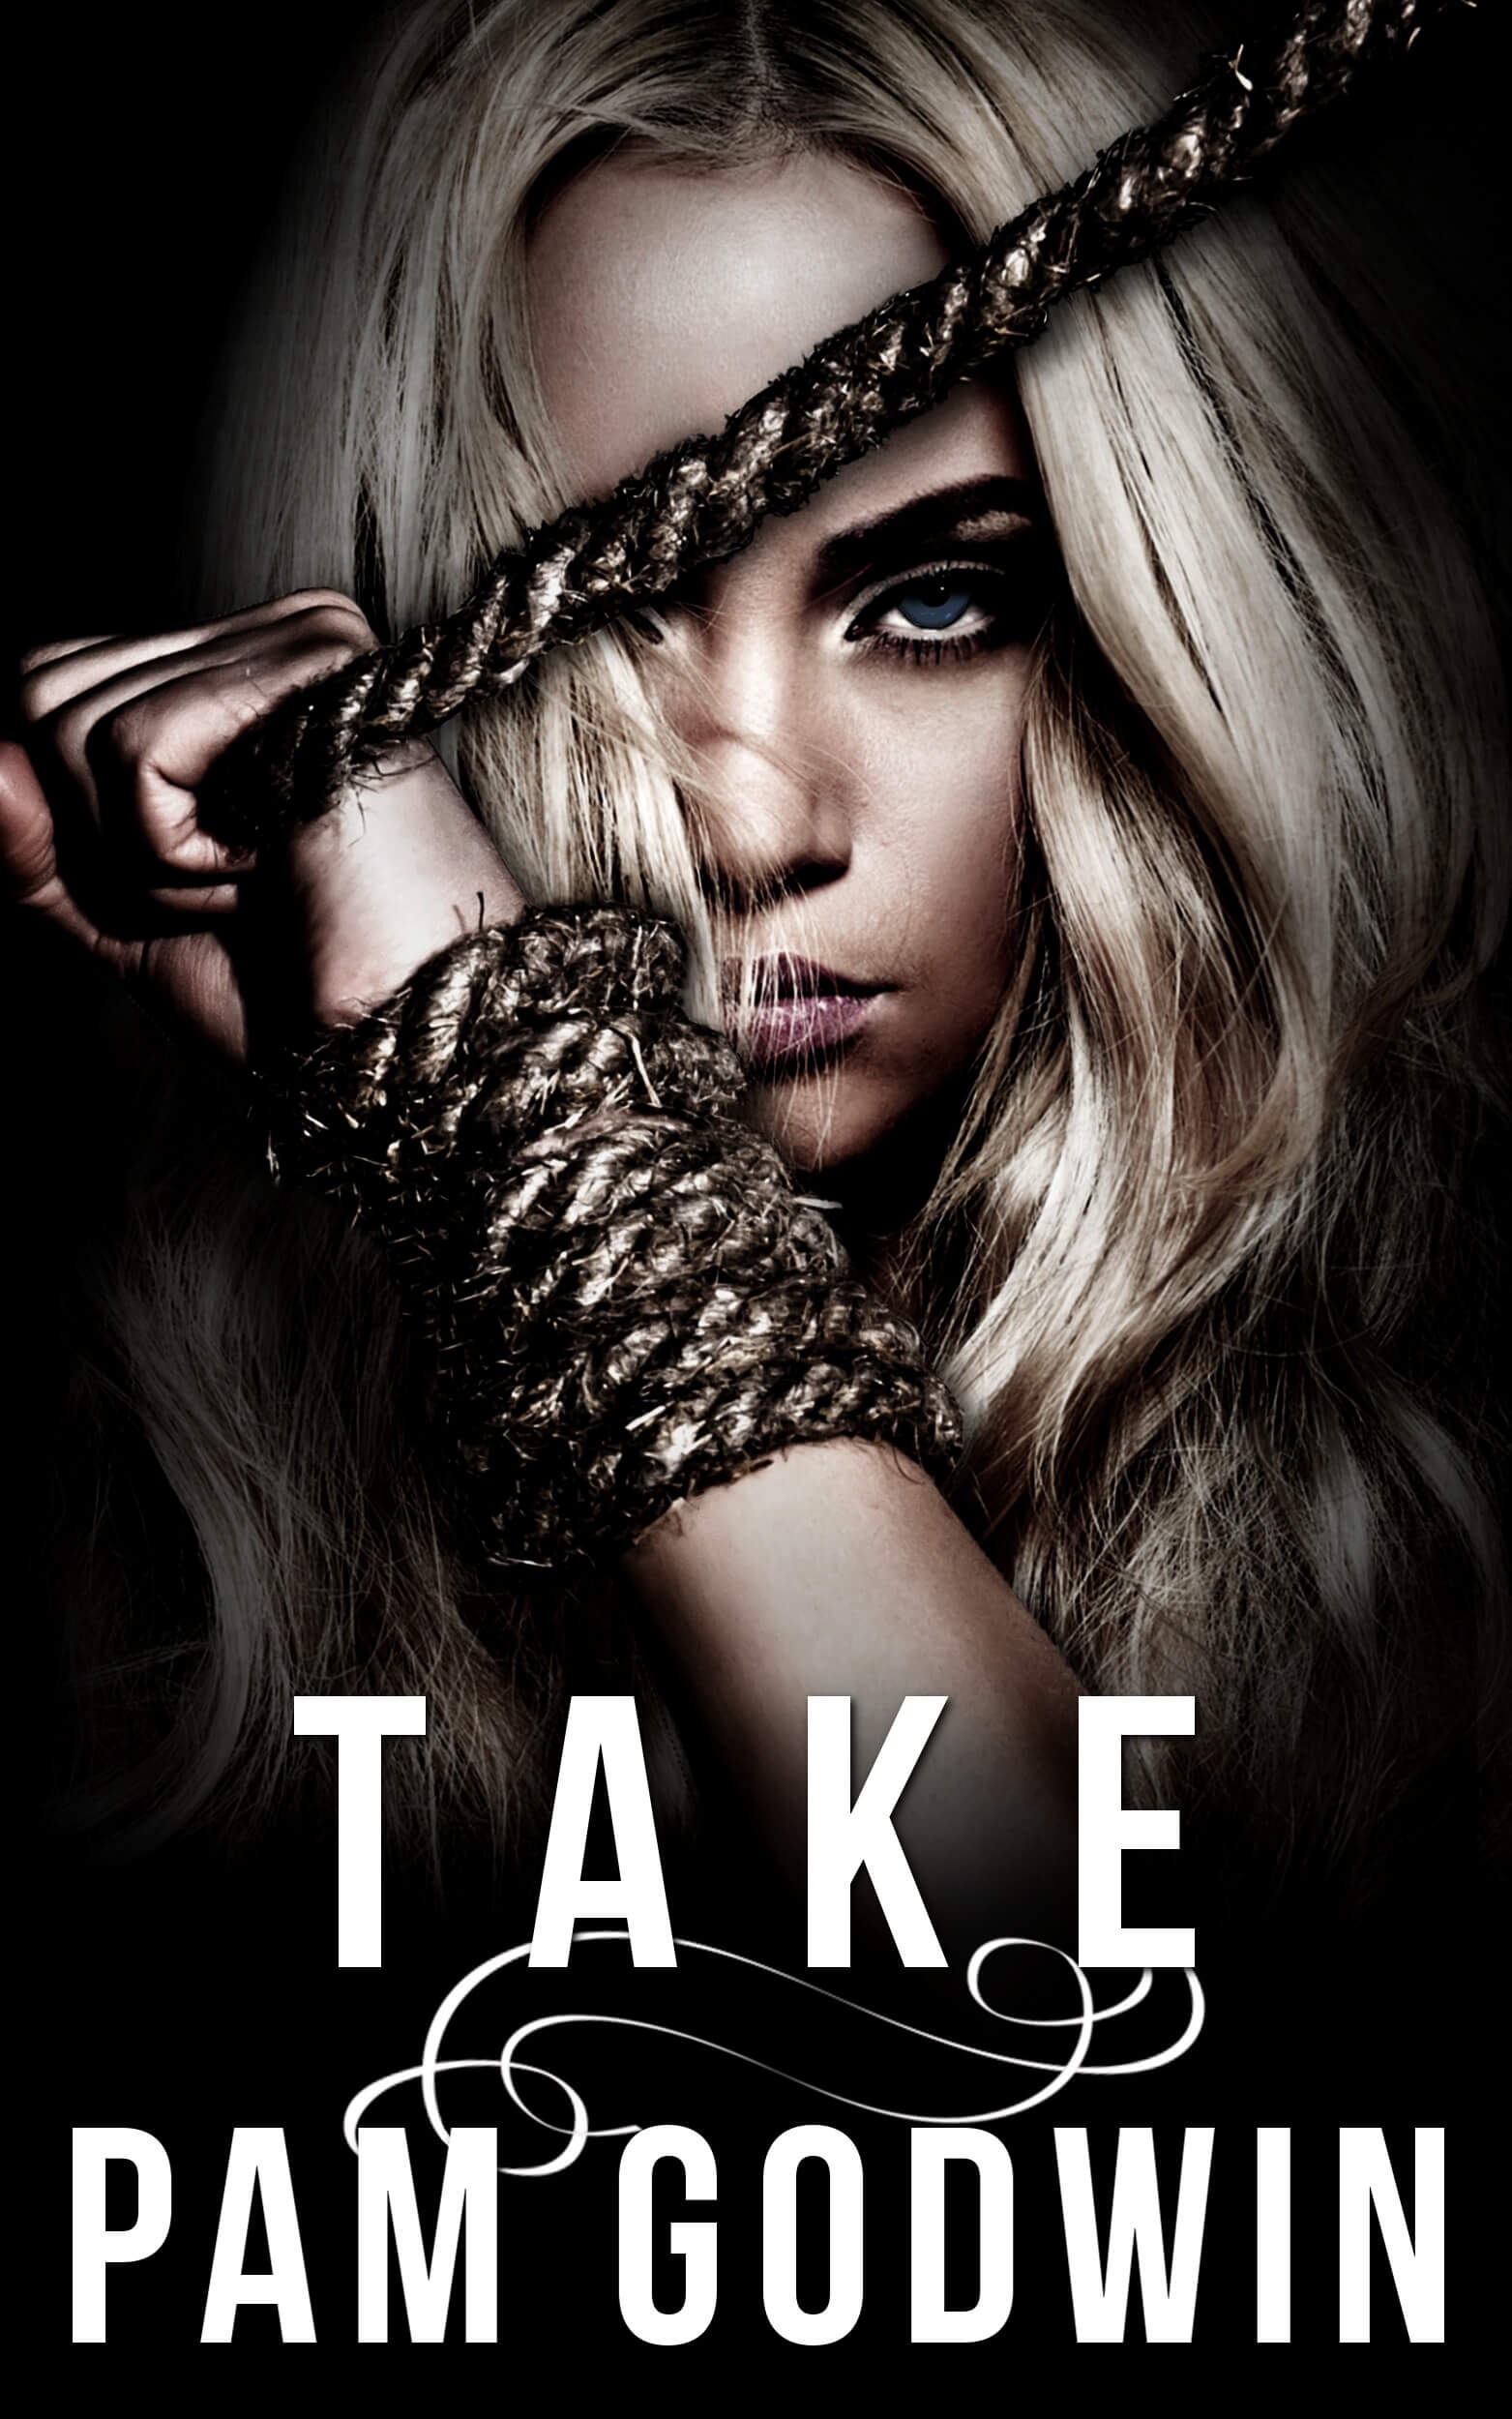 New Release: Take (Deliver series book 5) by Pam Godwin * Blog Tour * 5 Star Book Review